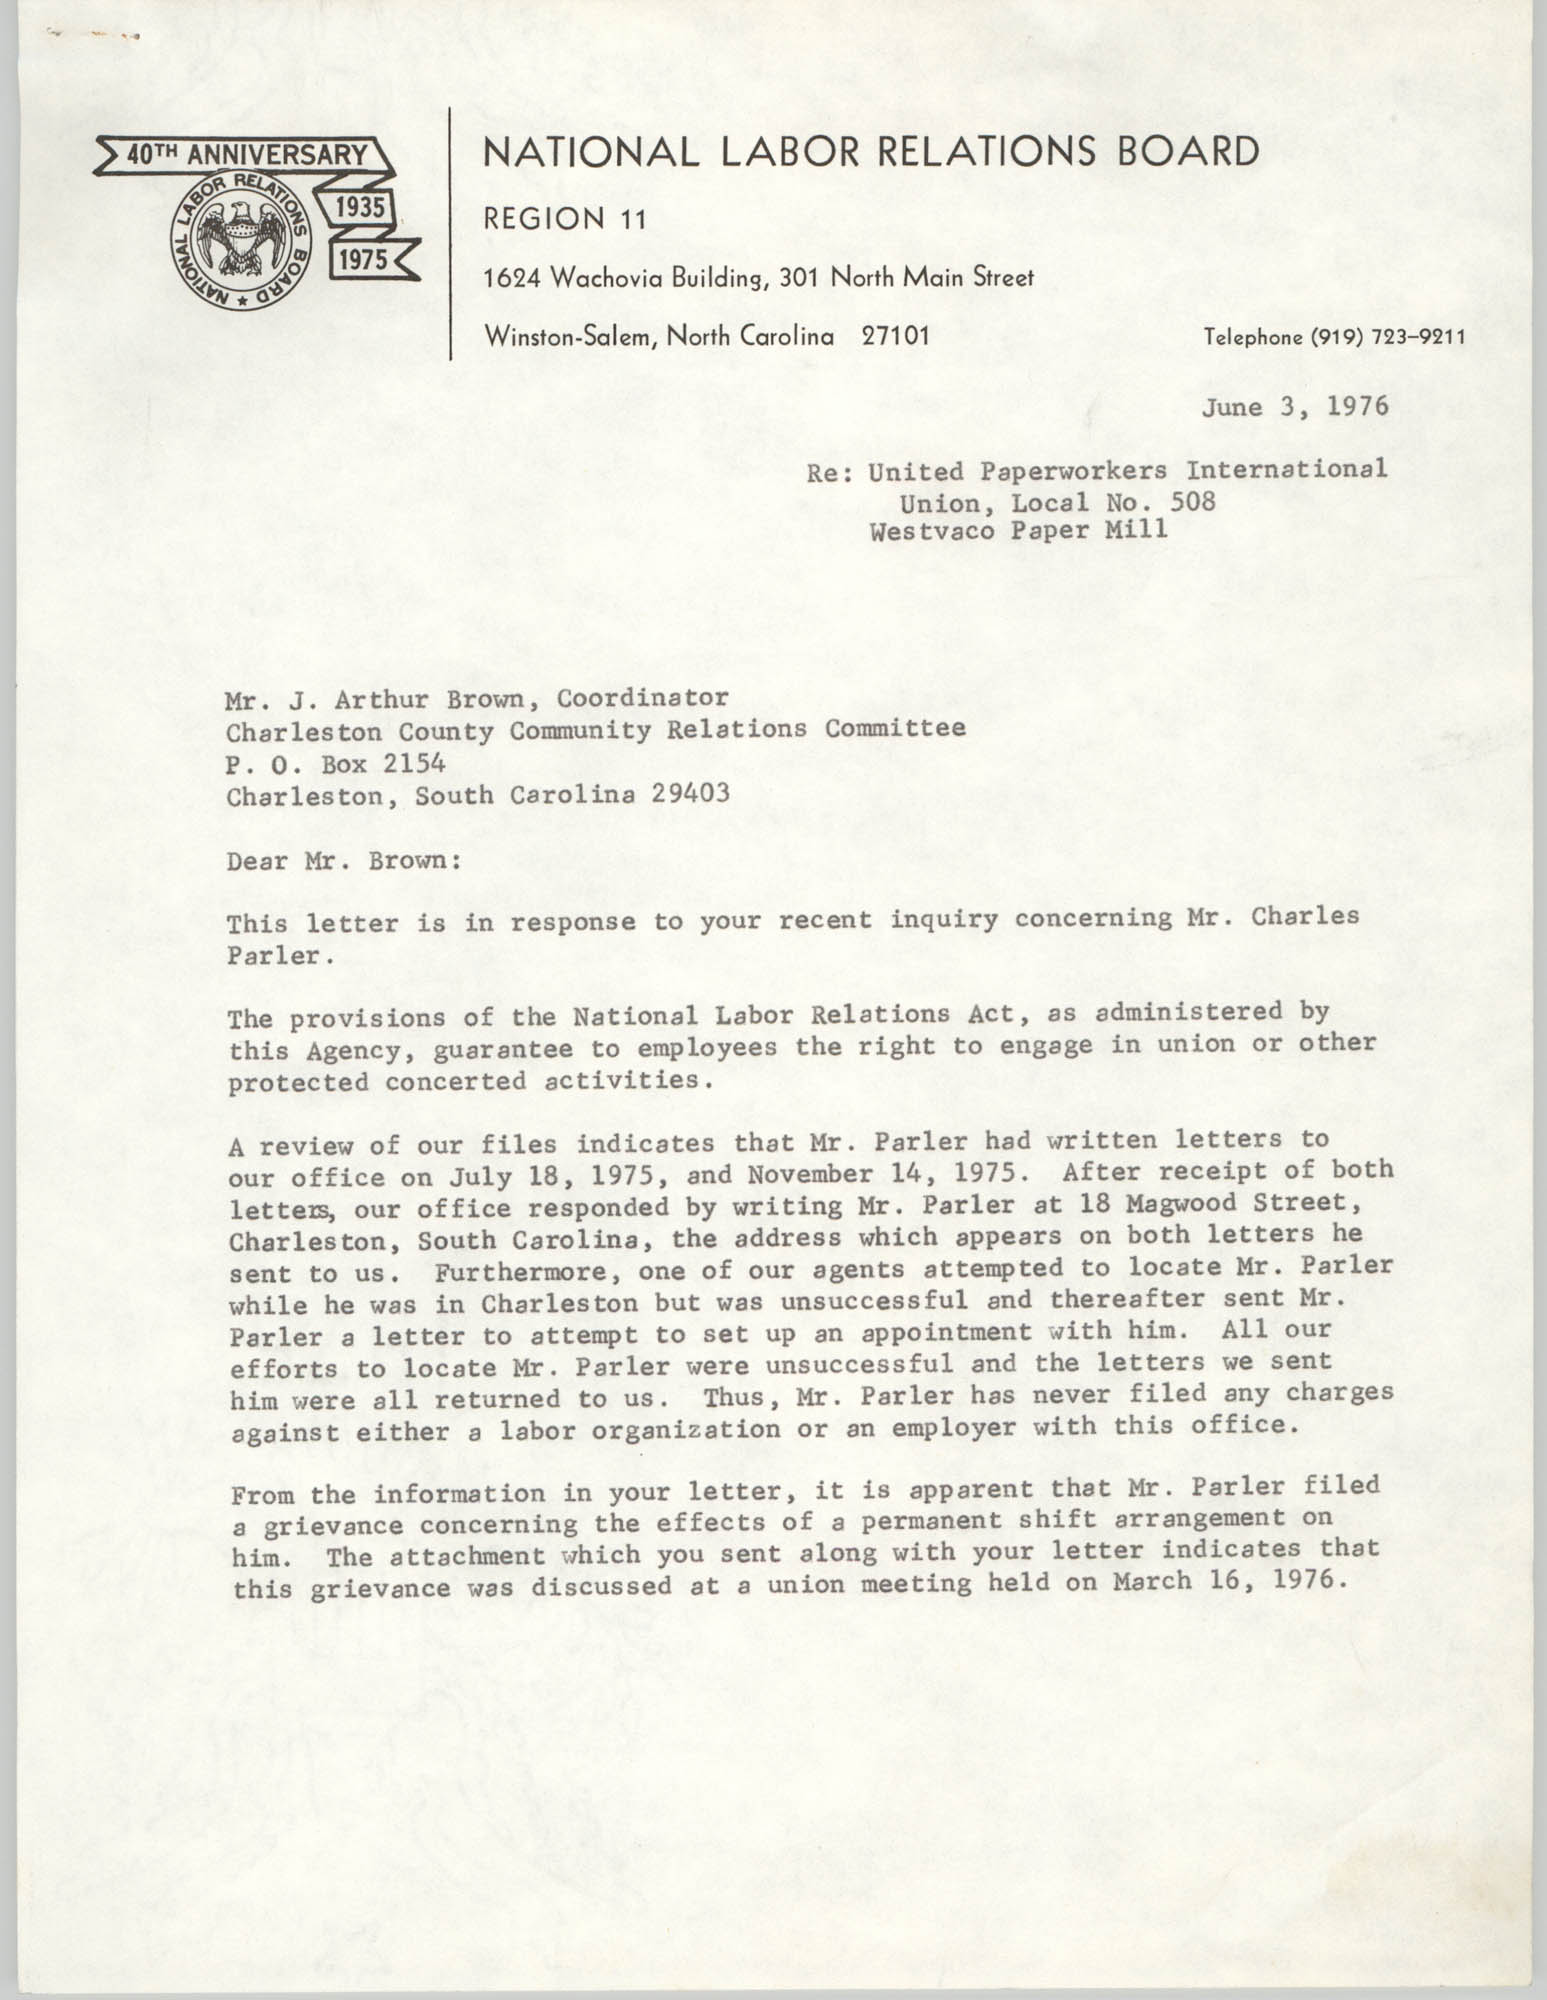 Letter from Arthur R. DePalma to J. Arthur Brown, June 3, 1976